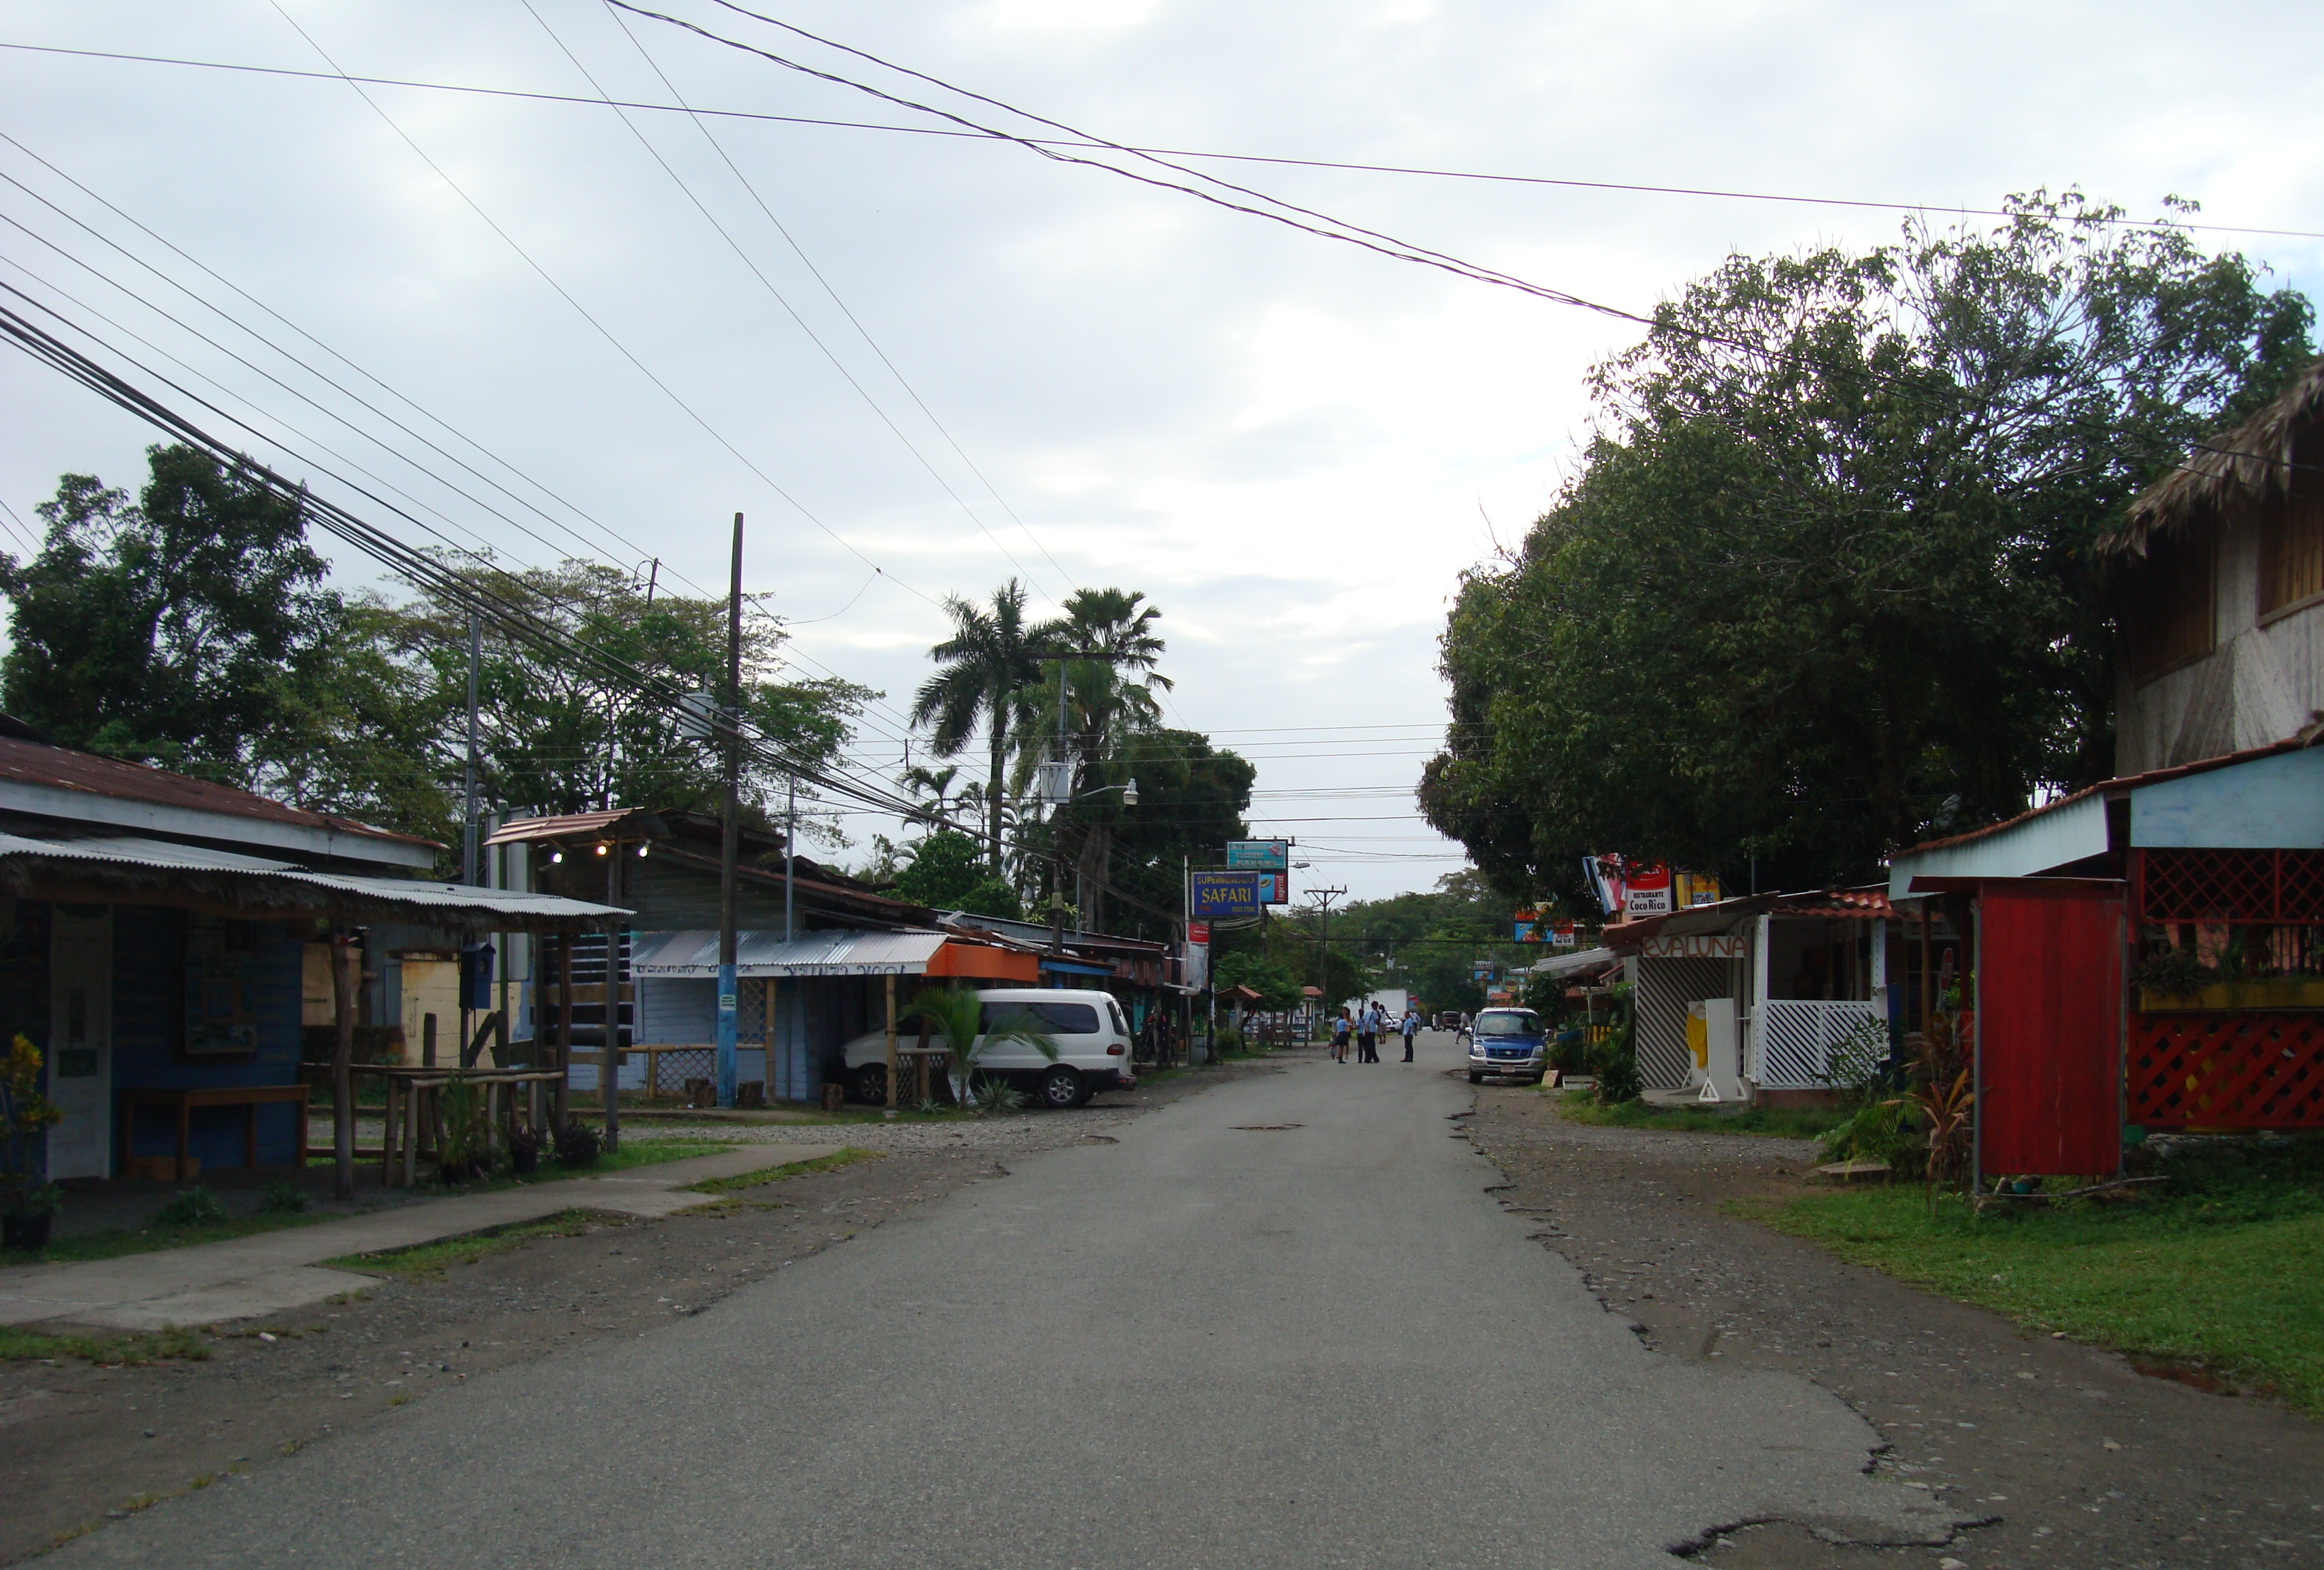 Cahuita Costa Rica  City pictures : Cahuita Costa Rica Wikipedia, the free encyclopedia